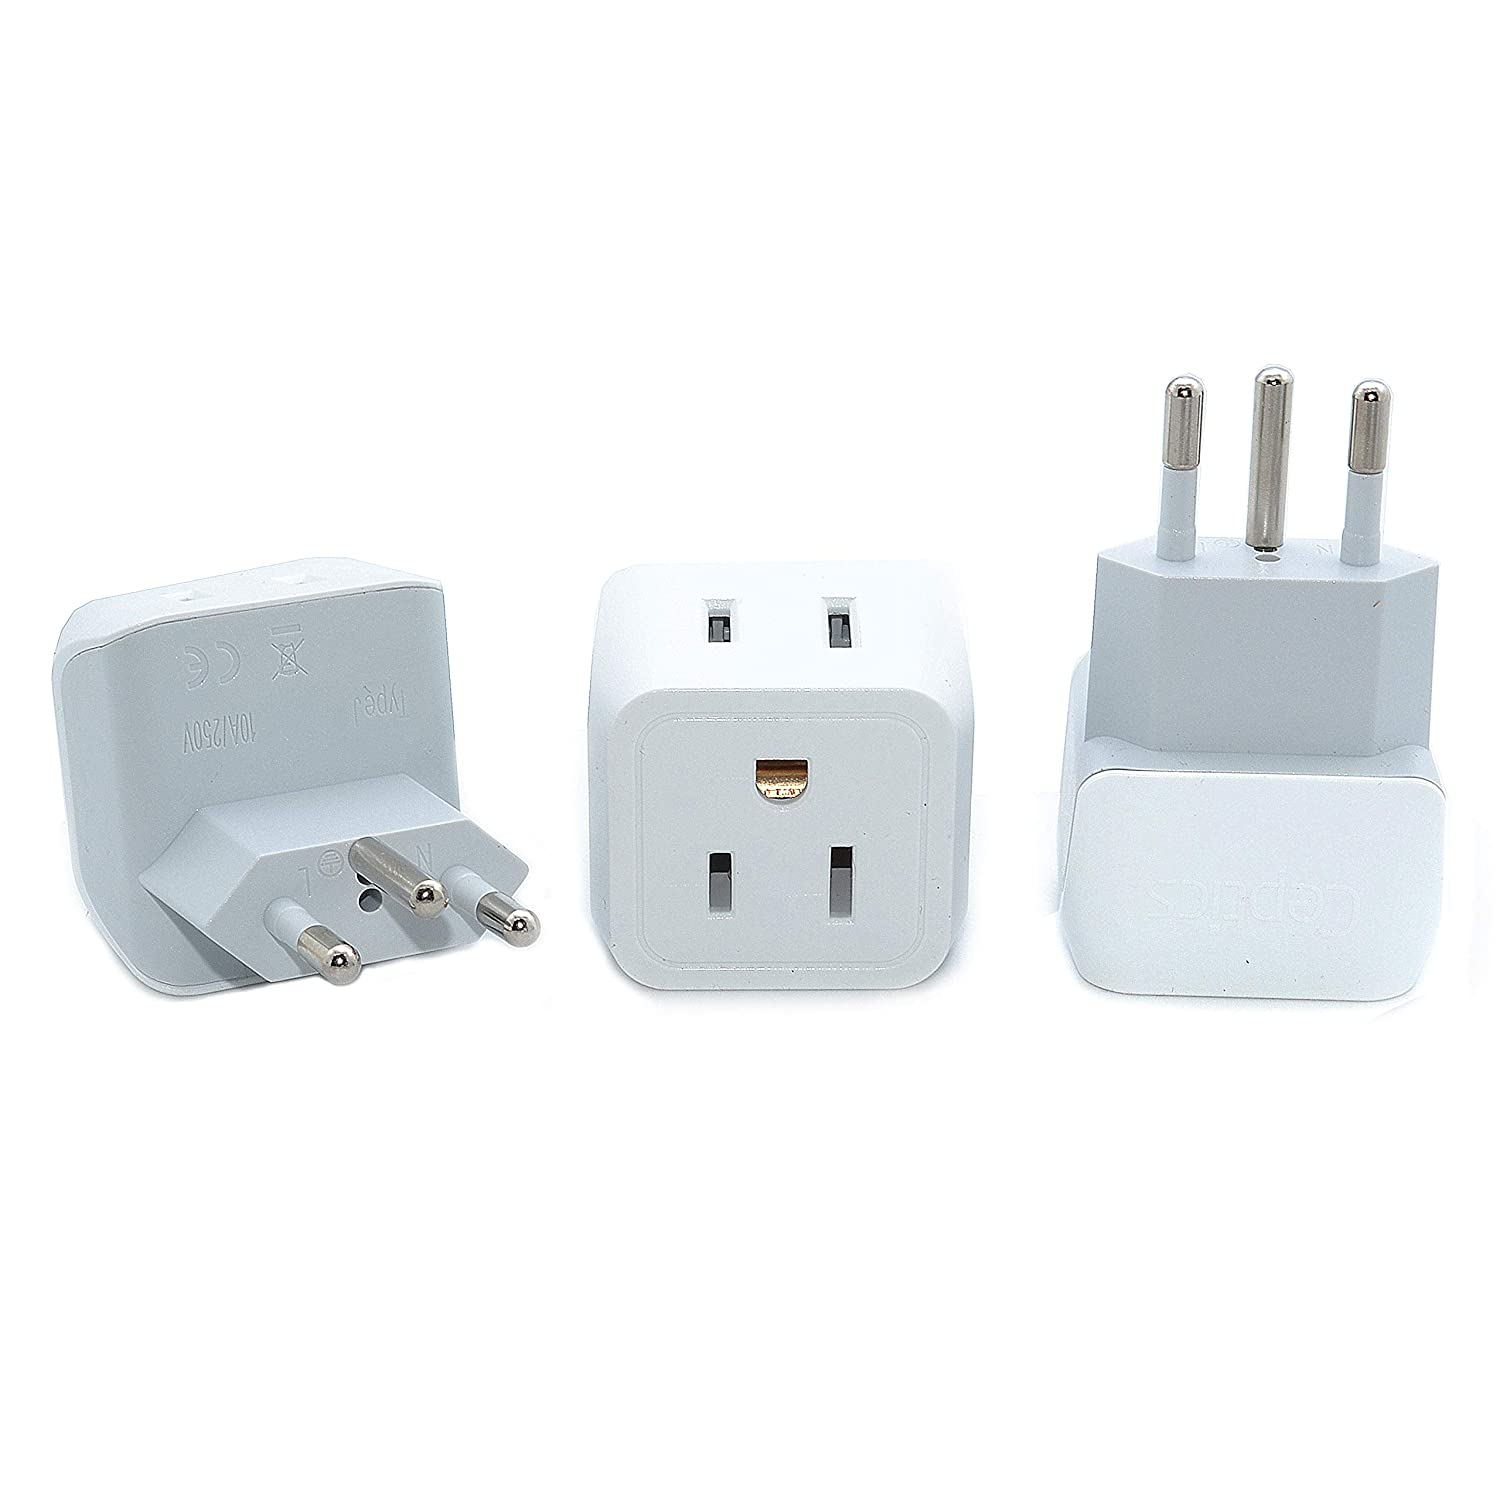 Ceptics USA to UK, Hong Kong Travel Adapter Plug - Type G (3 Pack) - Dual Inputs - Ultra Compact (Does Not Convert Voltage) CT-7